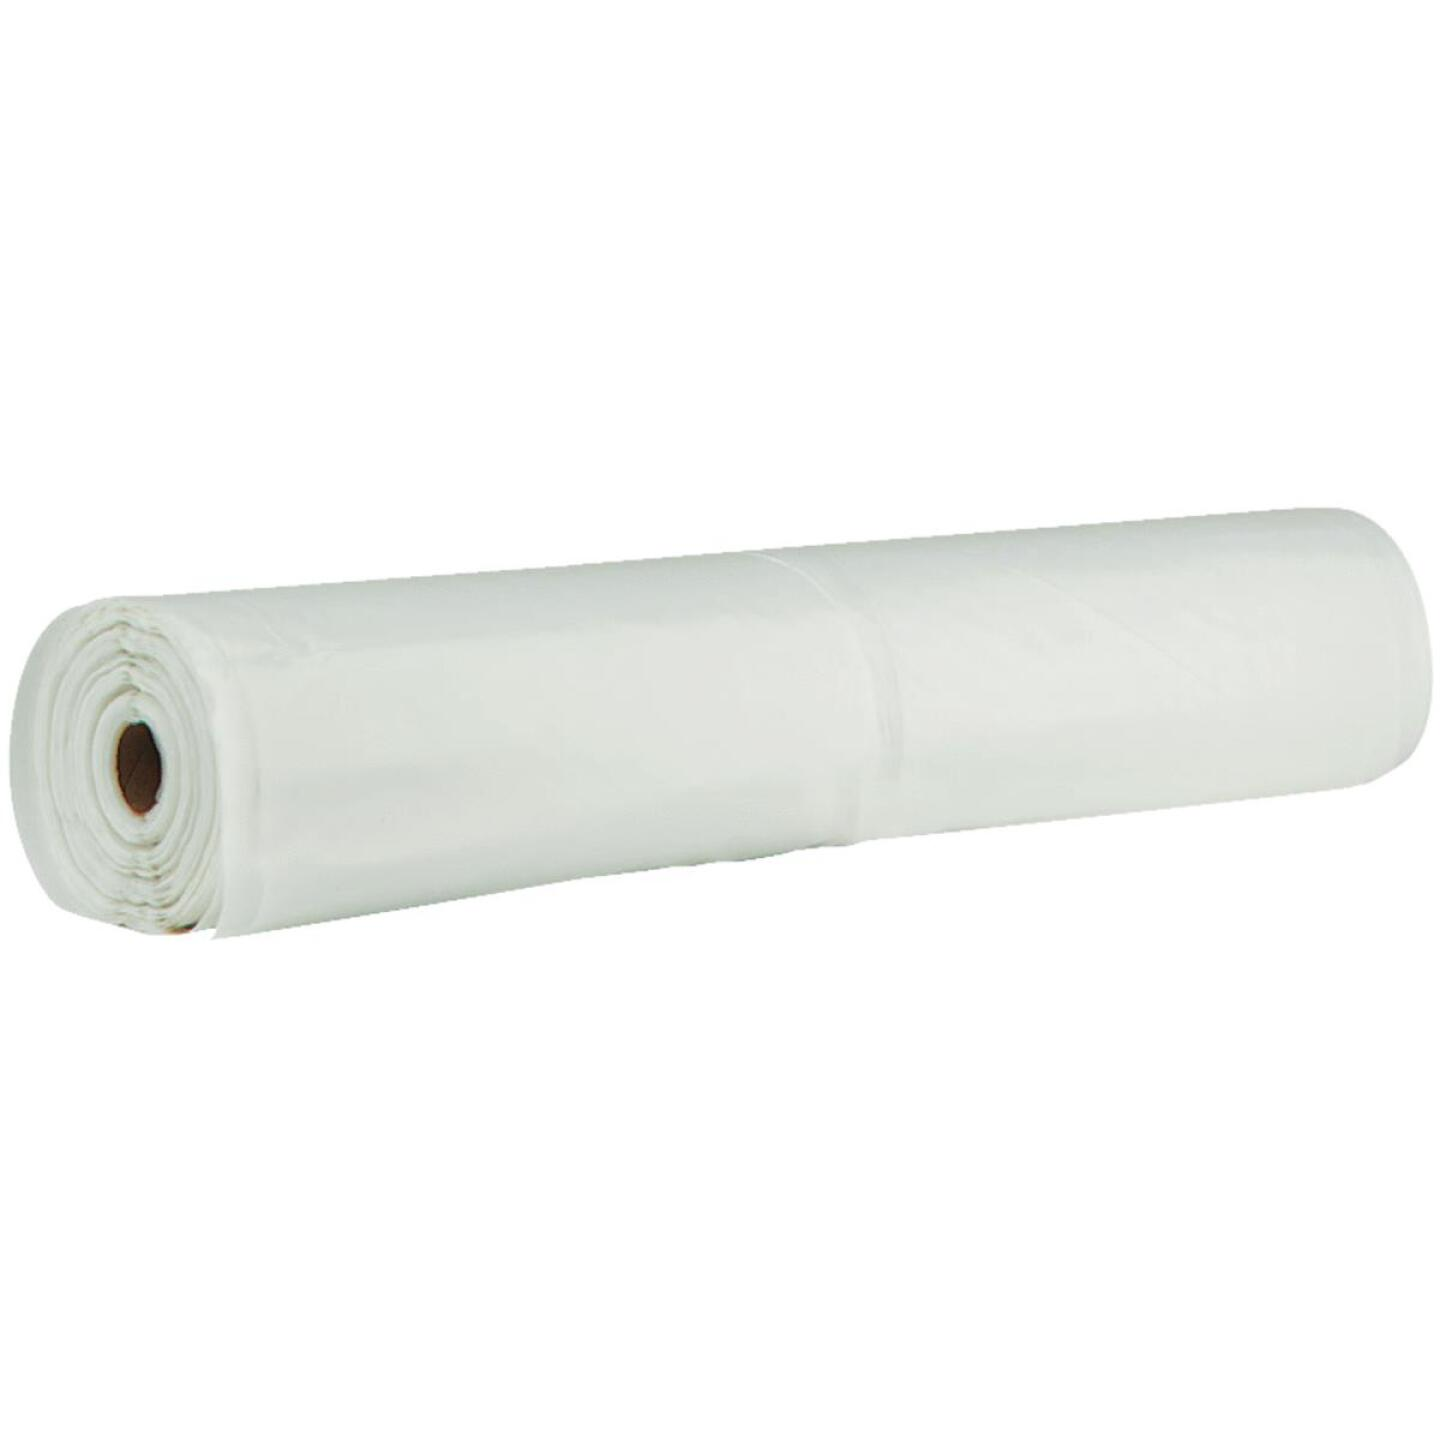 Film-Gard 16 Ft. x 50 Ft. Clear 4 Mil. Polyethylene Sheeting Image 1